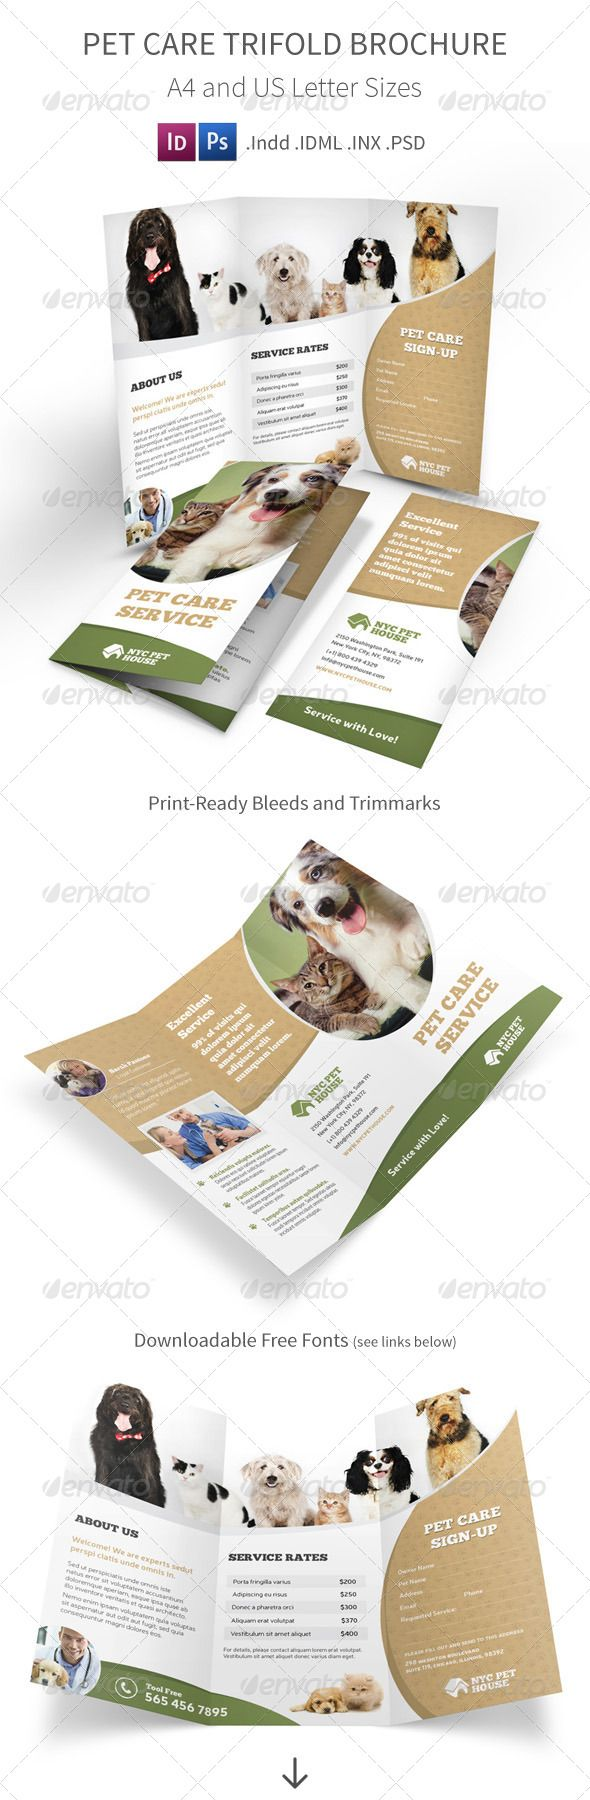 informational brochure template - 29 best trifold animal brochures images on pinterest